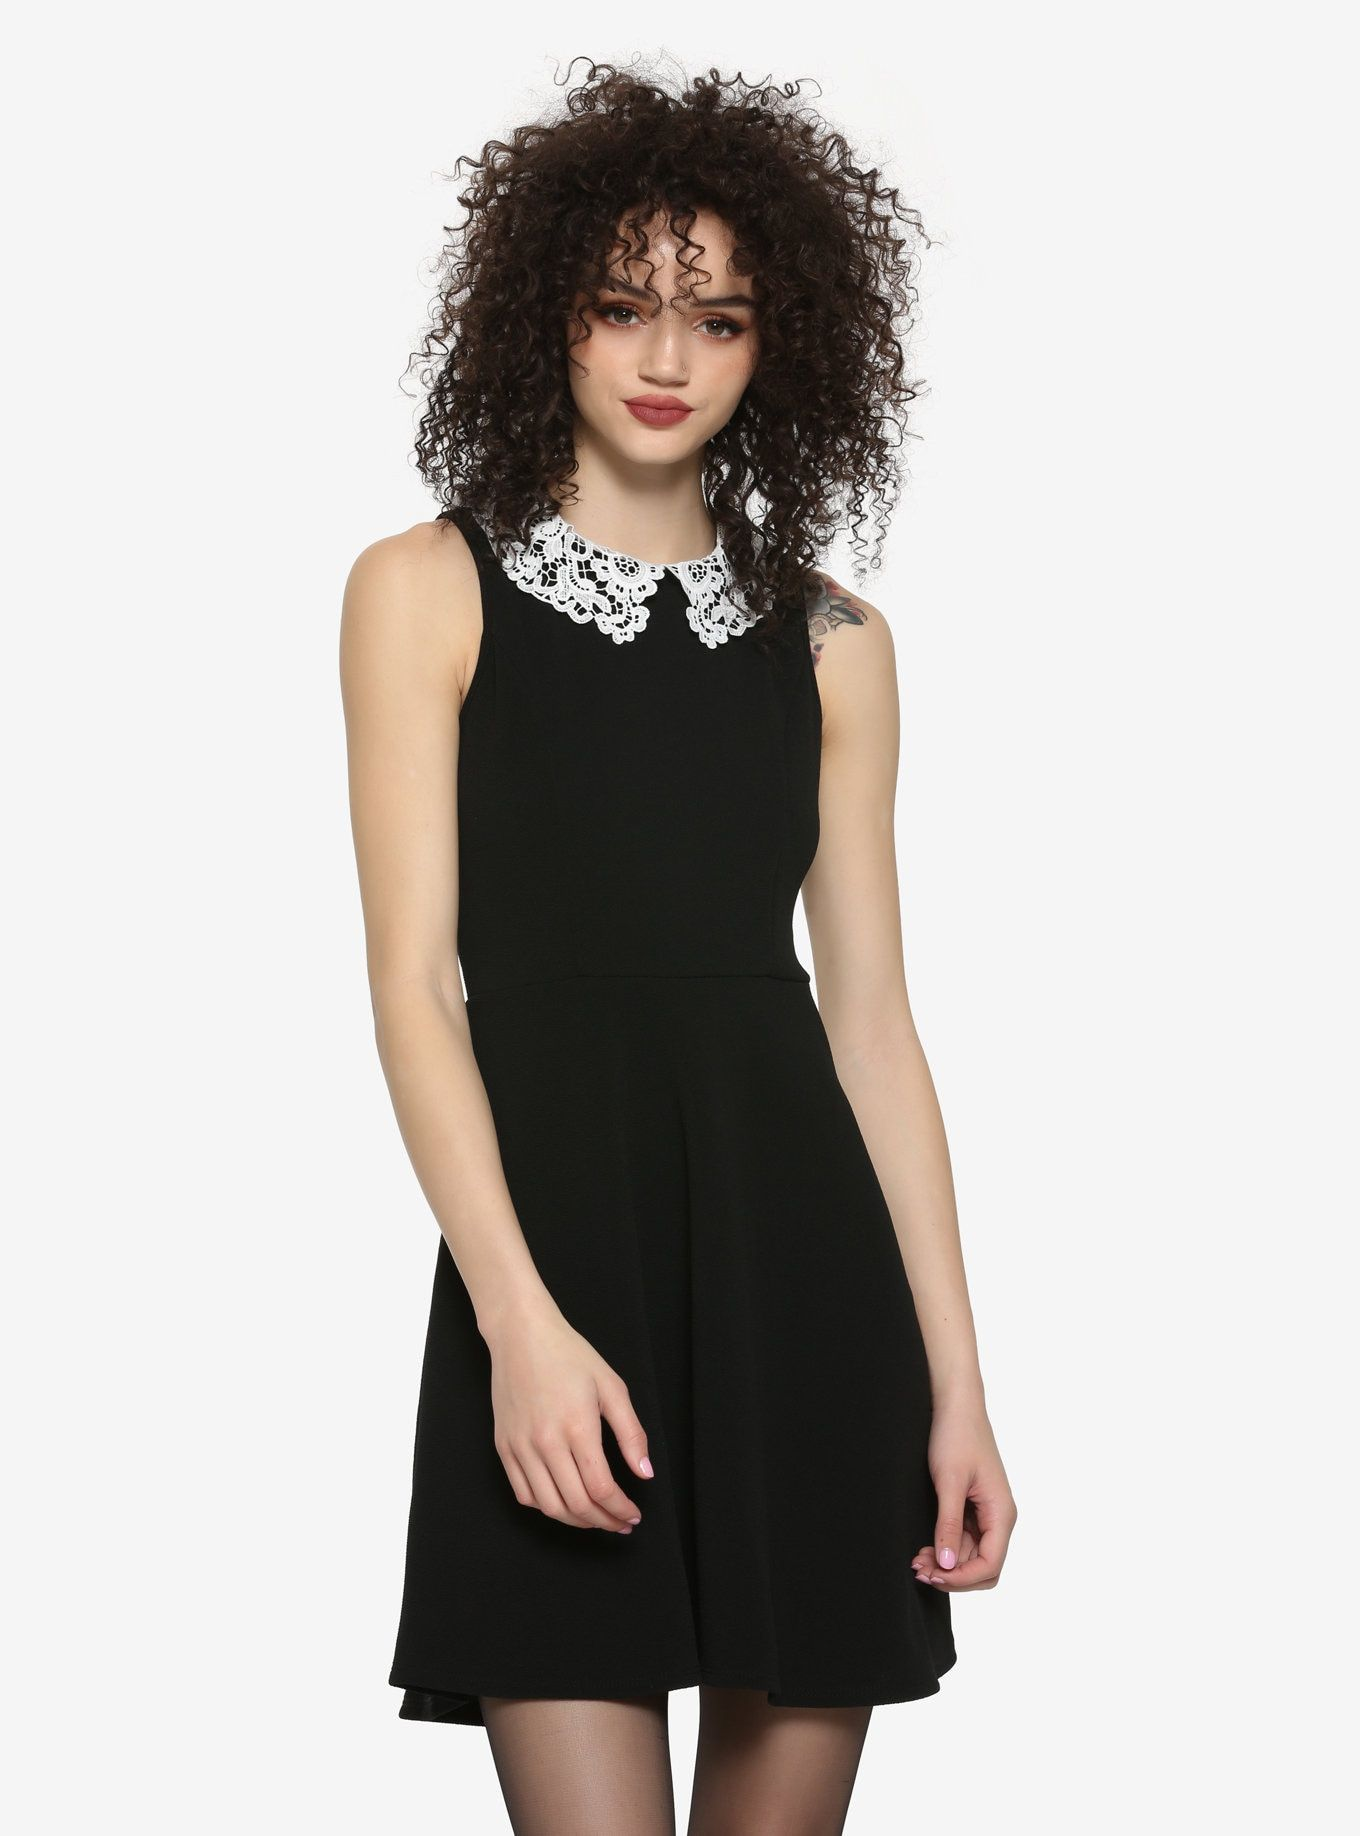 Black Lace Collar Dress My Style In 2019 Collar Dress